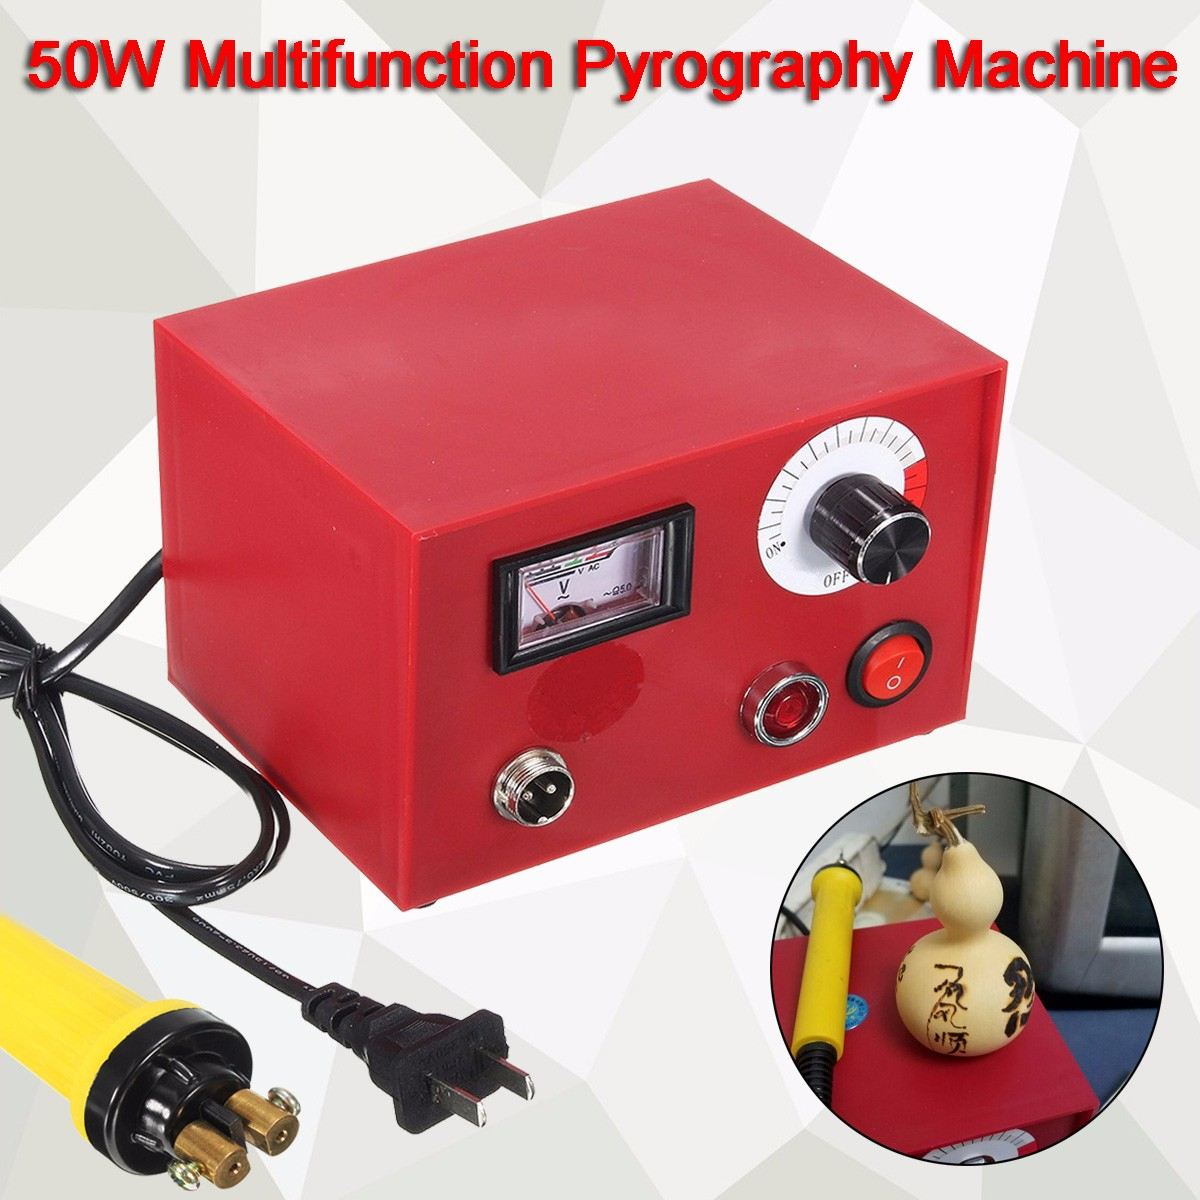 220V AC 50W DIY Craft Multifunction Pyrography Machine With 1Pc Pyrography Pen Copper Heating Solder Tip Gourd Wooden Tool Set